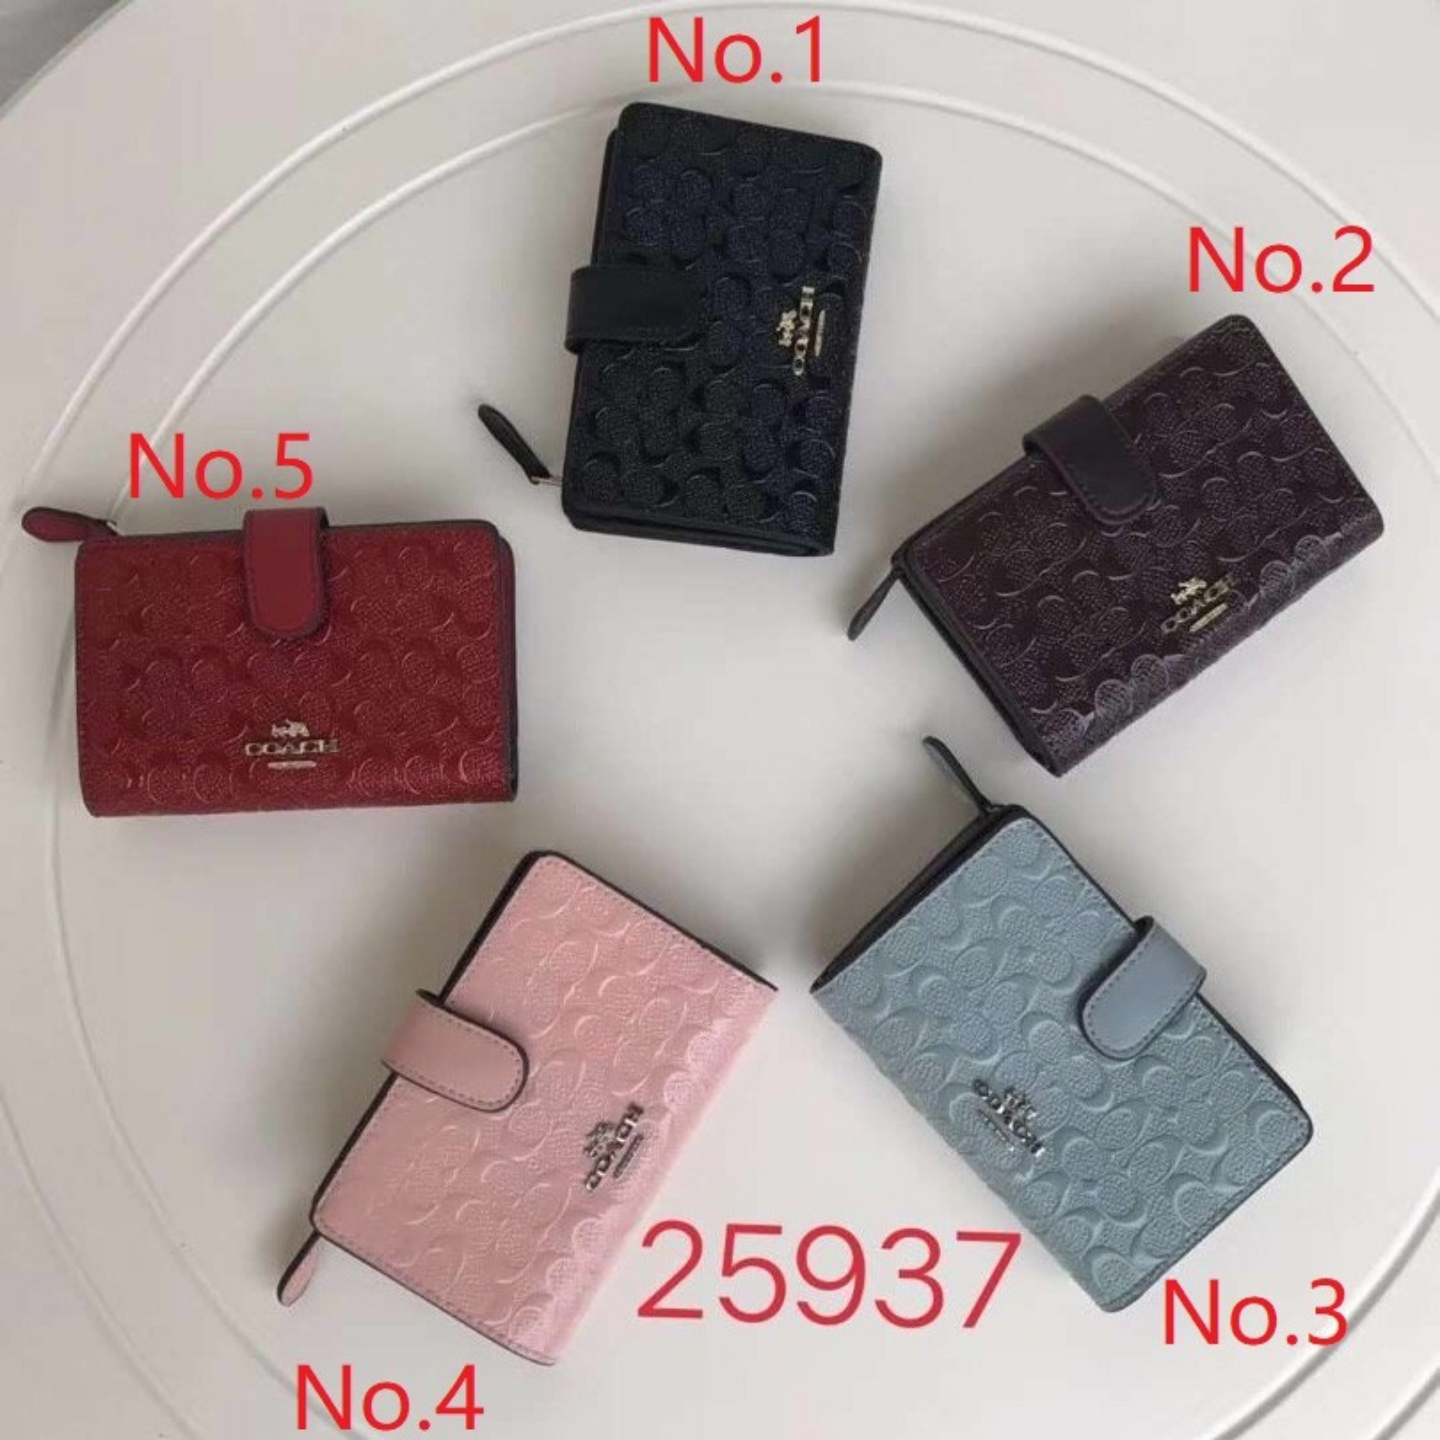 (SG COD) Coach Ladies wallets F25937 Fashion wallets Short Wallets Popular wallets